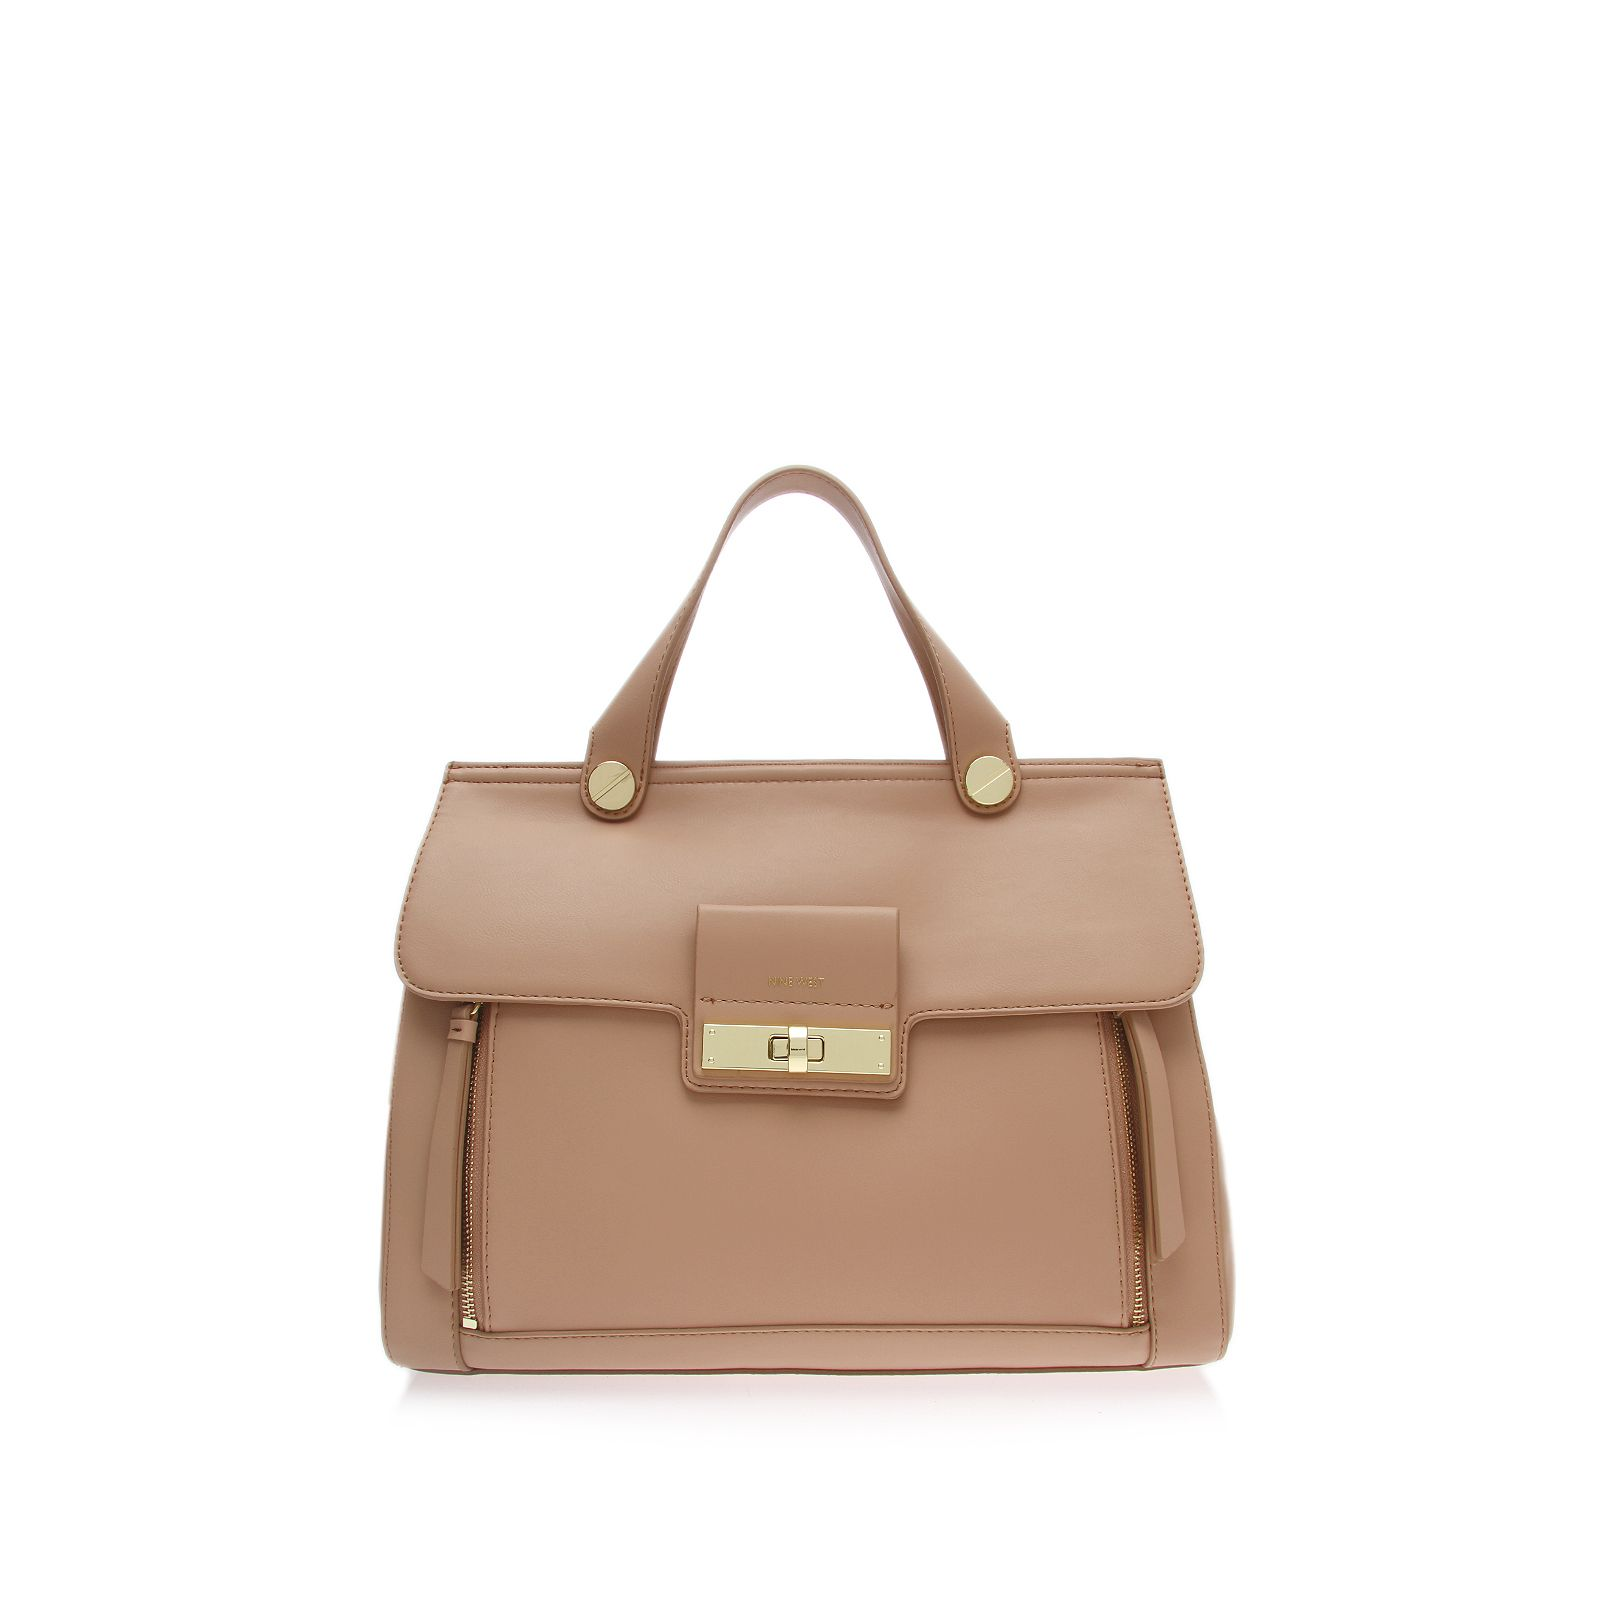 Rangles satchel bag